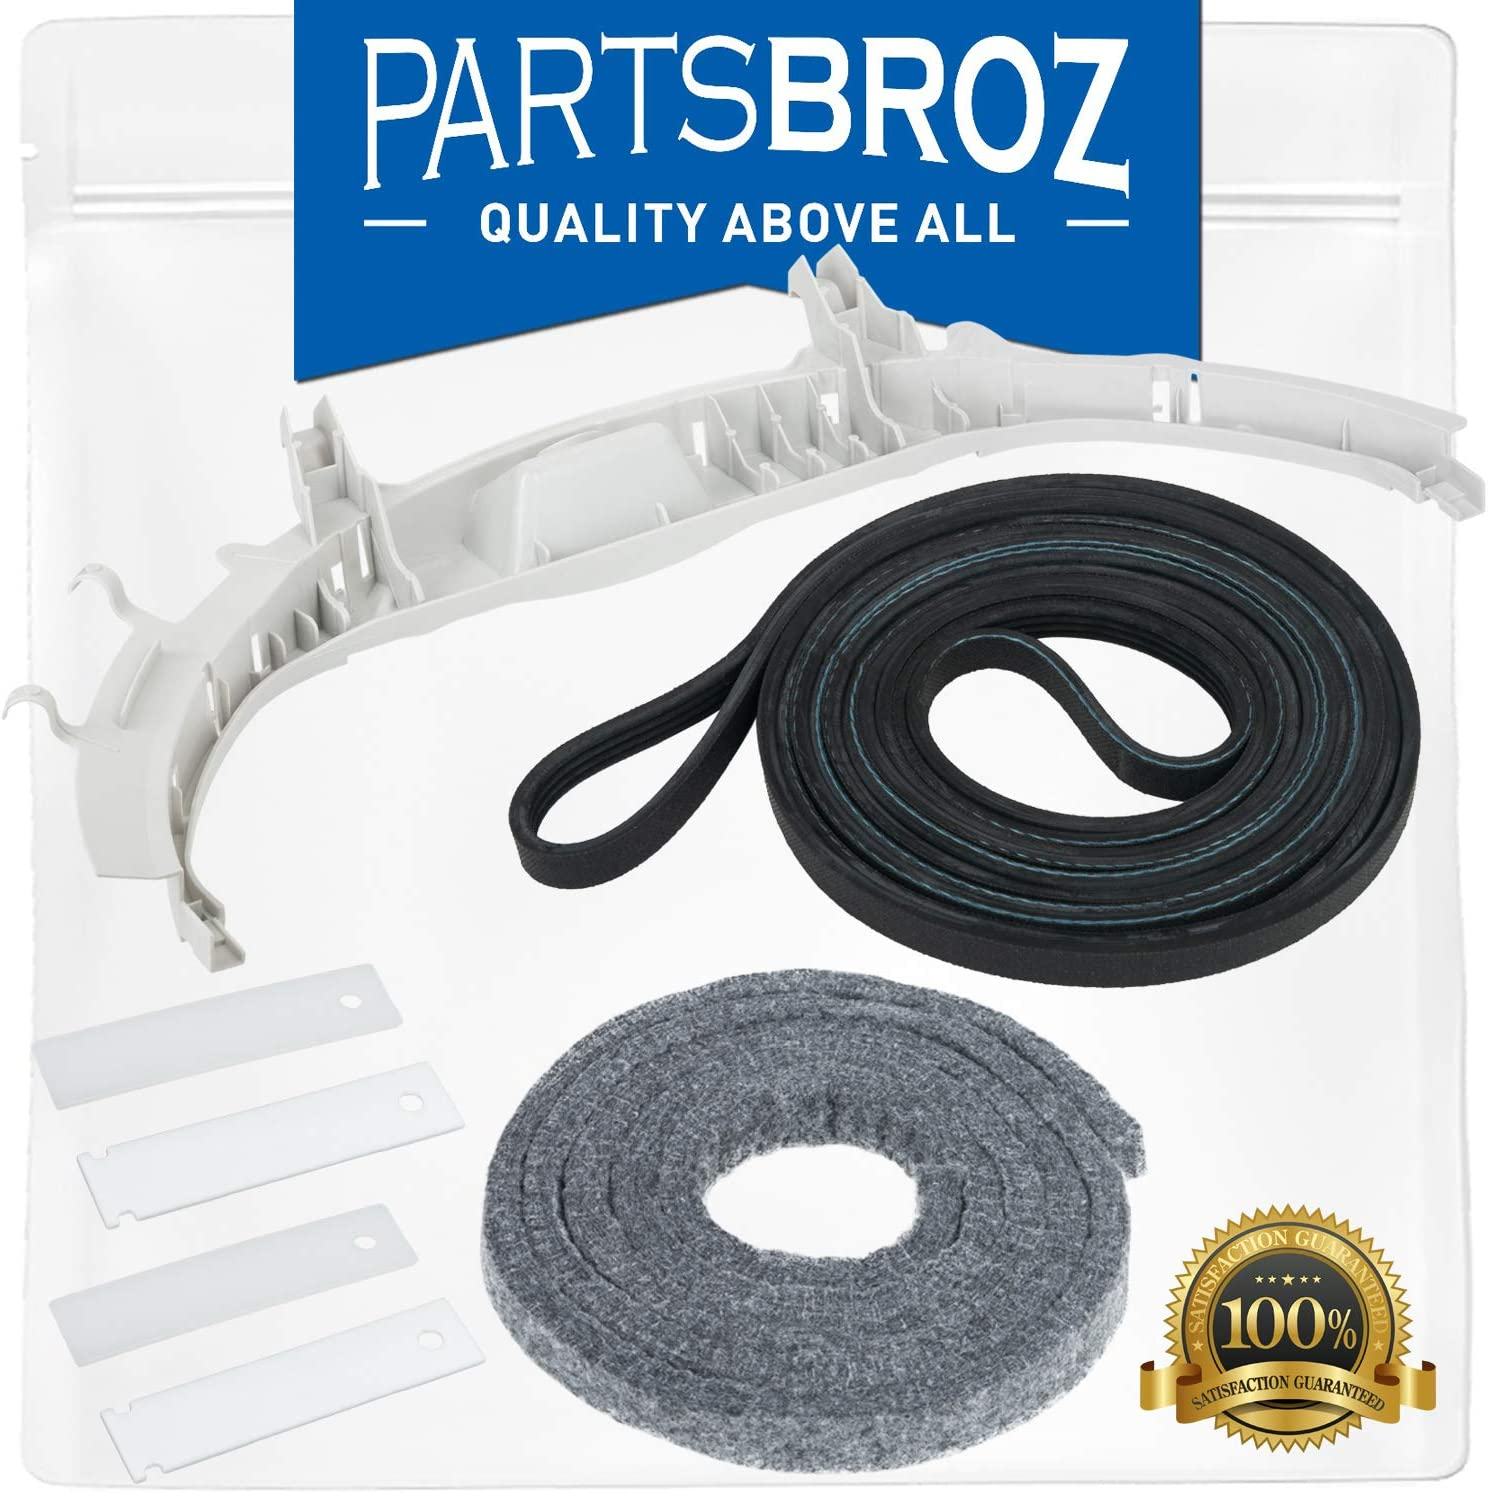 WE49X20697 Dryer Bearing Kit for GE Dryers by Parts Broz - Replaces Part Numbers AP5806906 & PS9493092